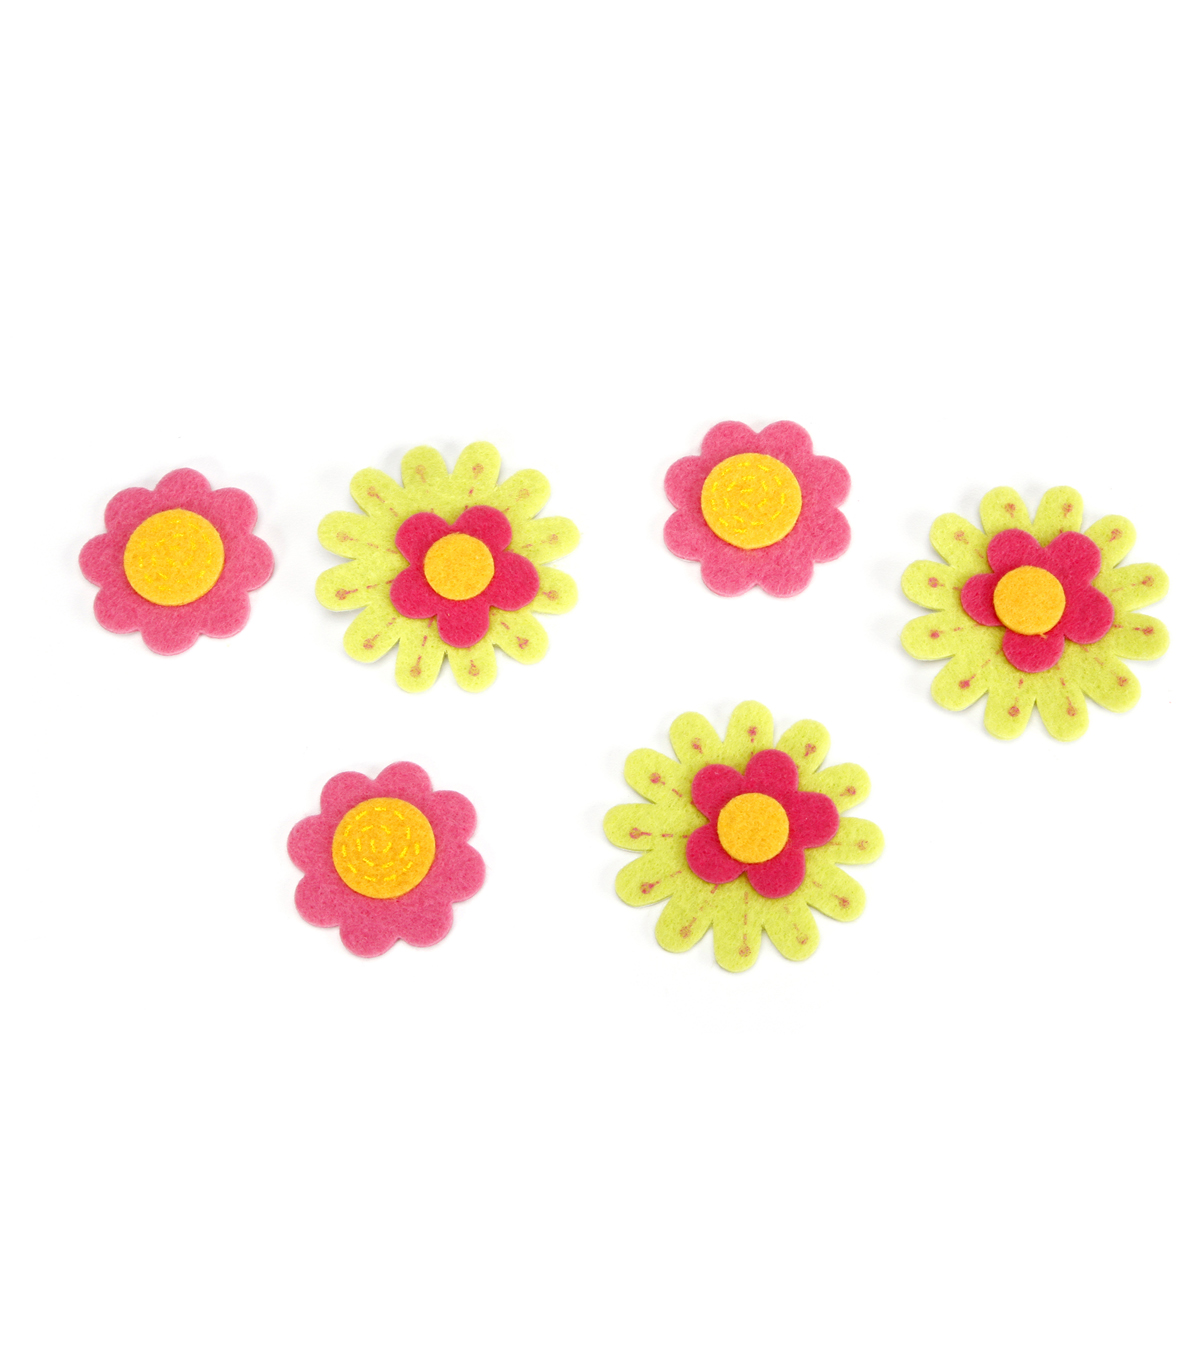 Darice Felties 16 pk Felt Stickers-Crazy Daisies